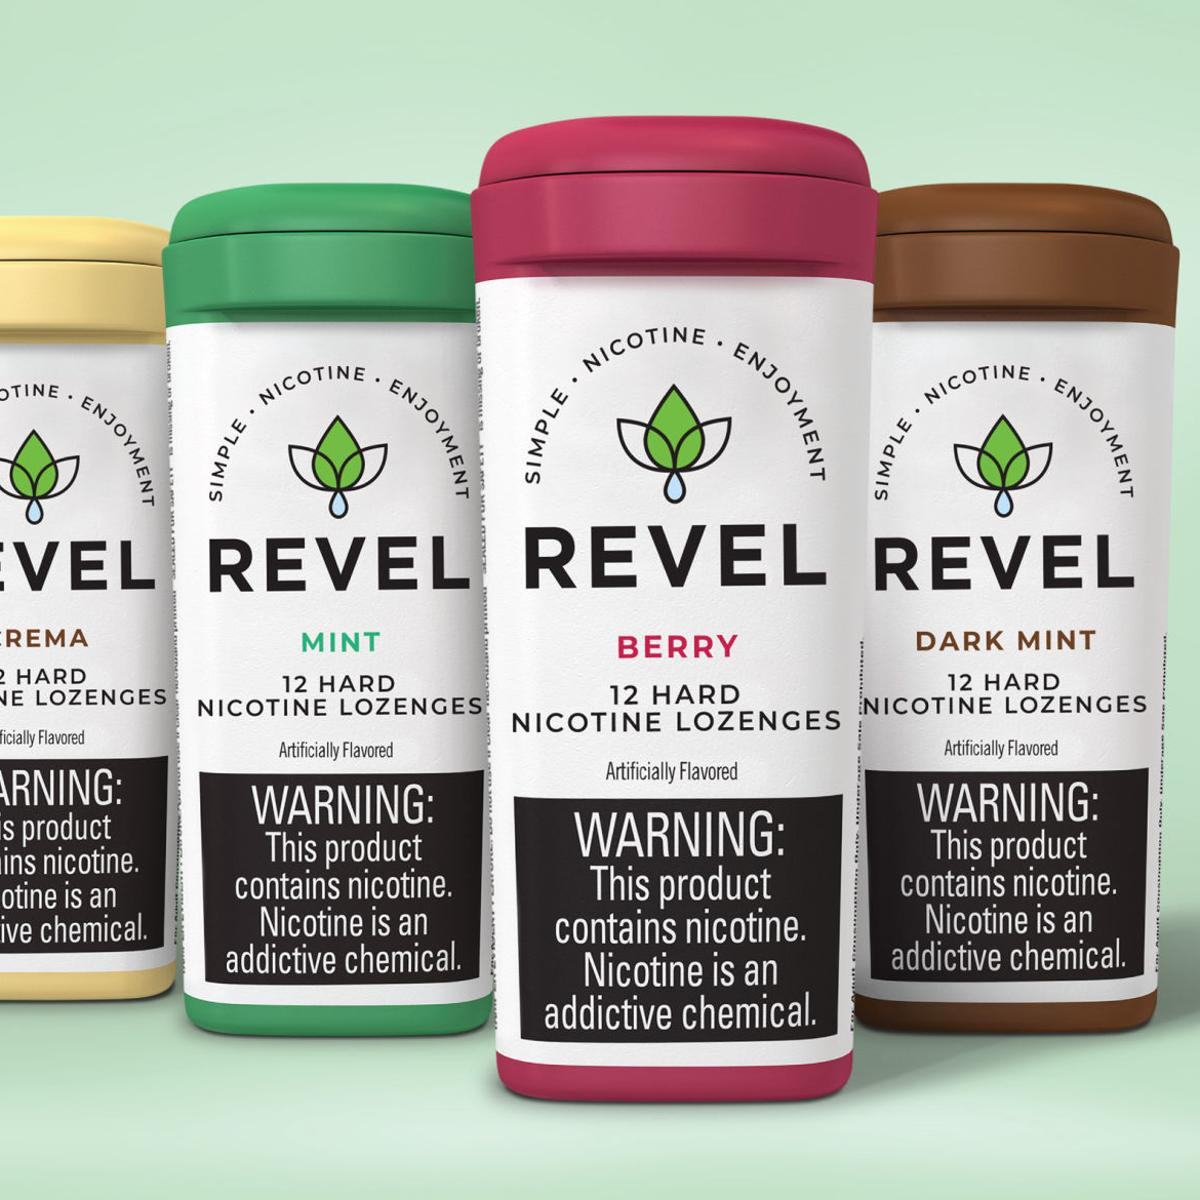 Reynolds expands reach of dissolvable tobacco product with